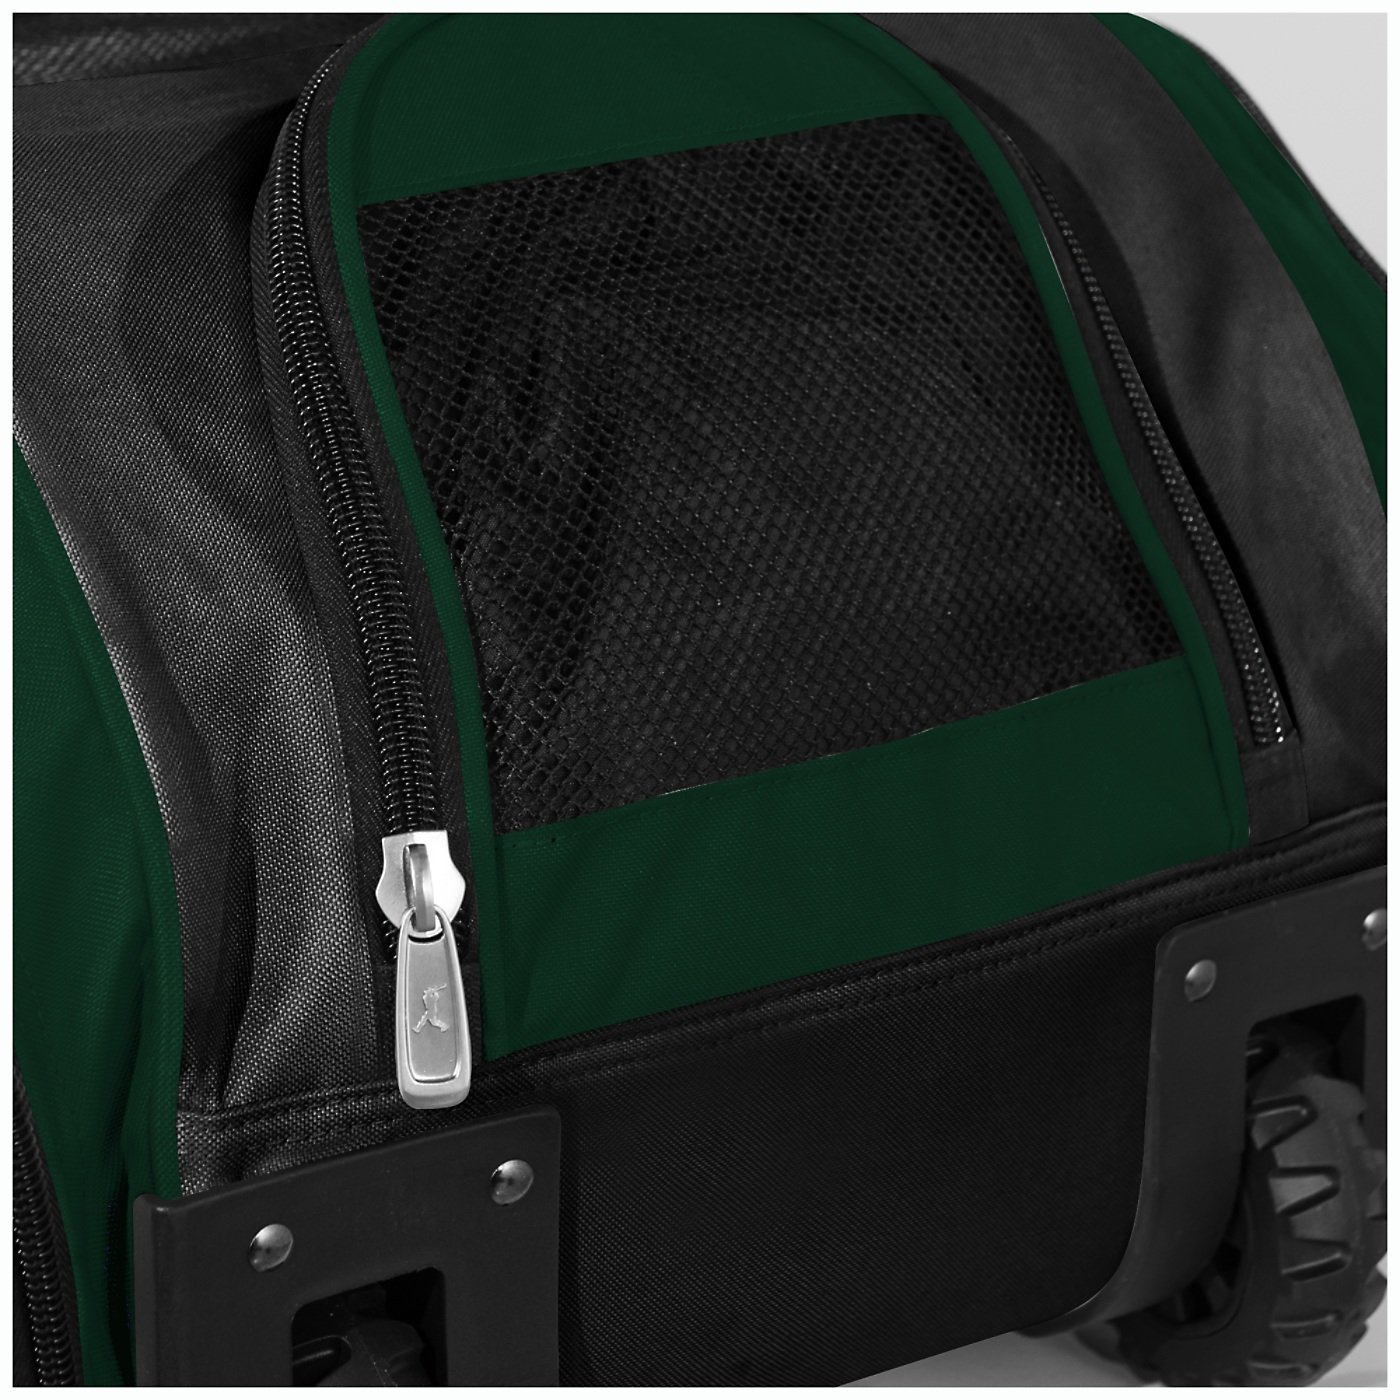 Boombah Beast Baseball/Softball Bat Bag - 40'' x 14'' x 13'' - Black/Dk Green - Holds 8 Bats, Glove & Shoe Compartments by Boombah (Image #4)